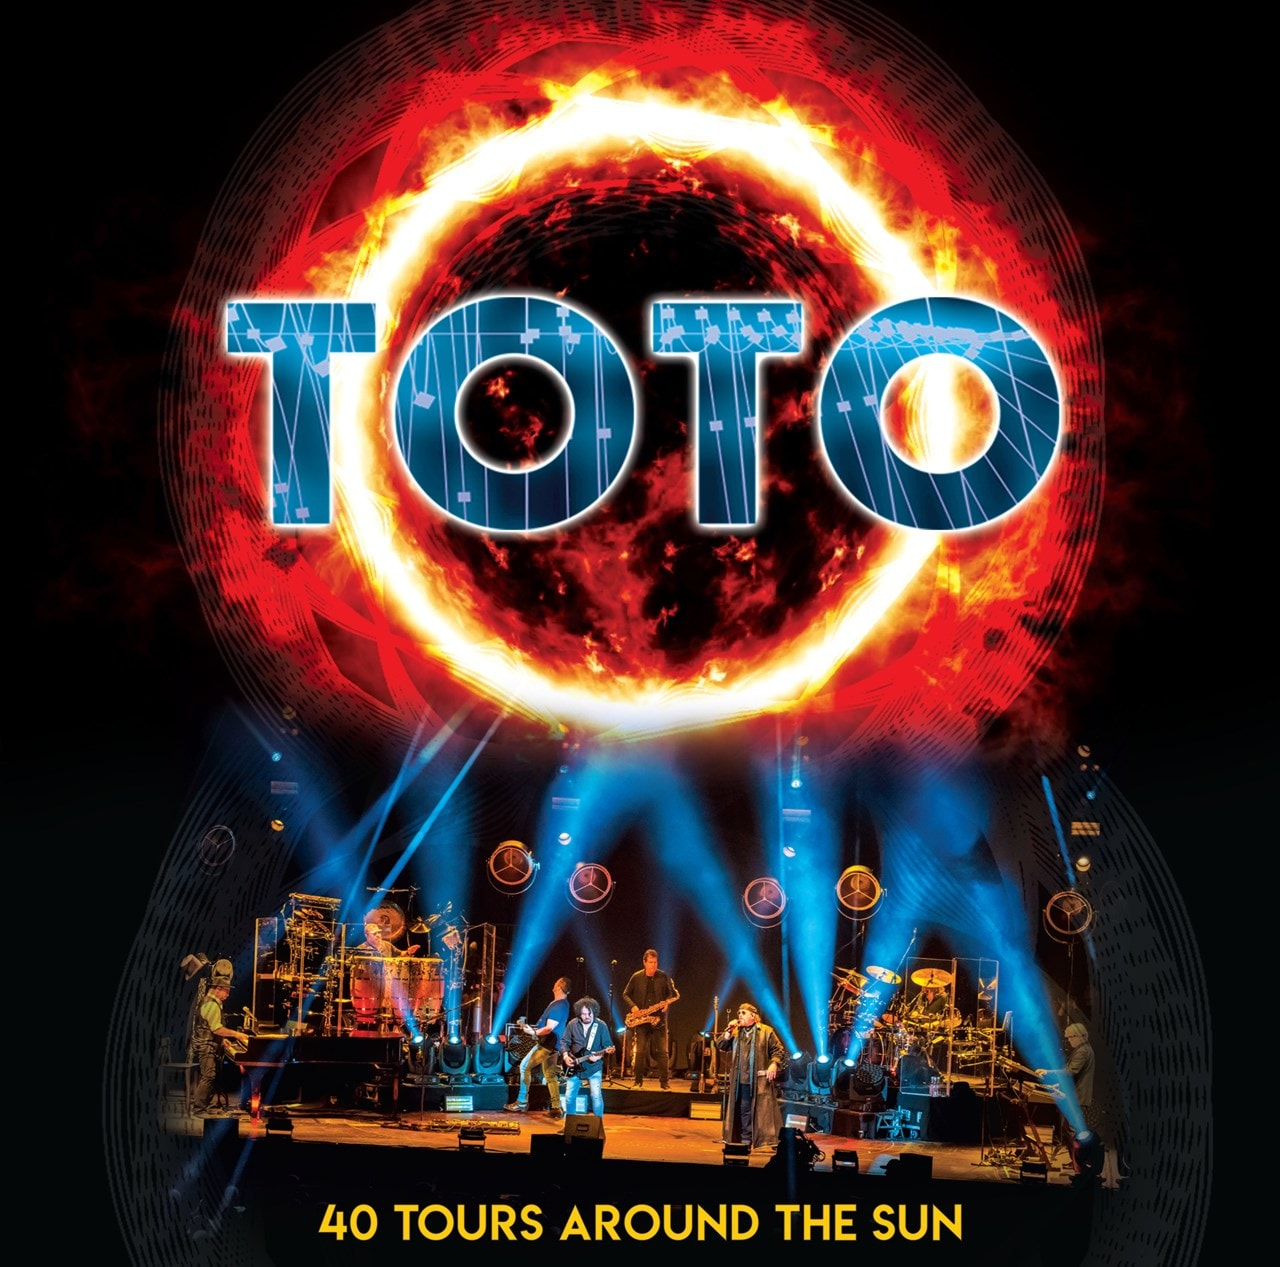 40 Tours Around the Sun: Live at the Ziggo Dome, Amsterdam - 1